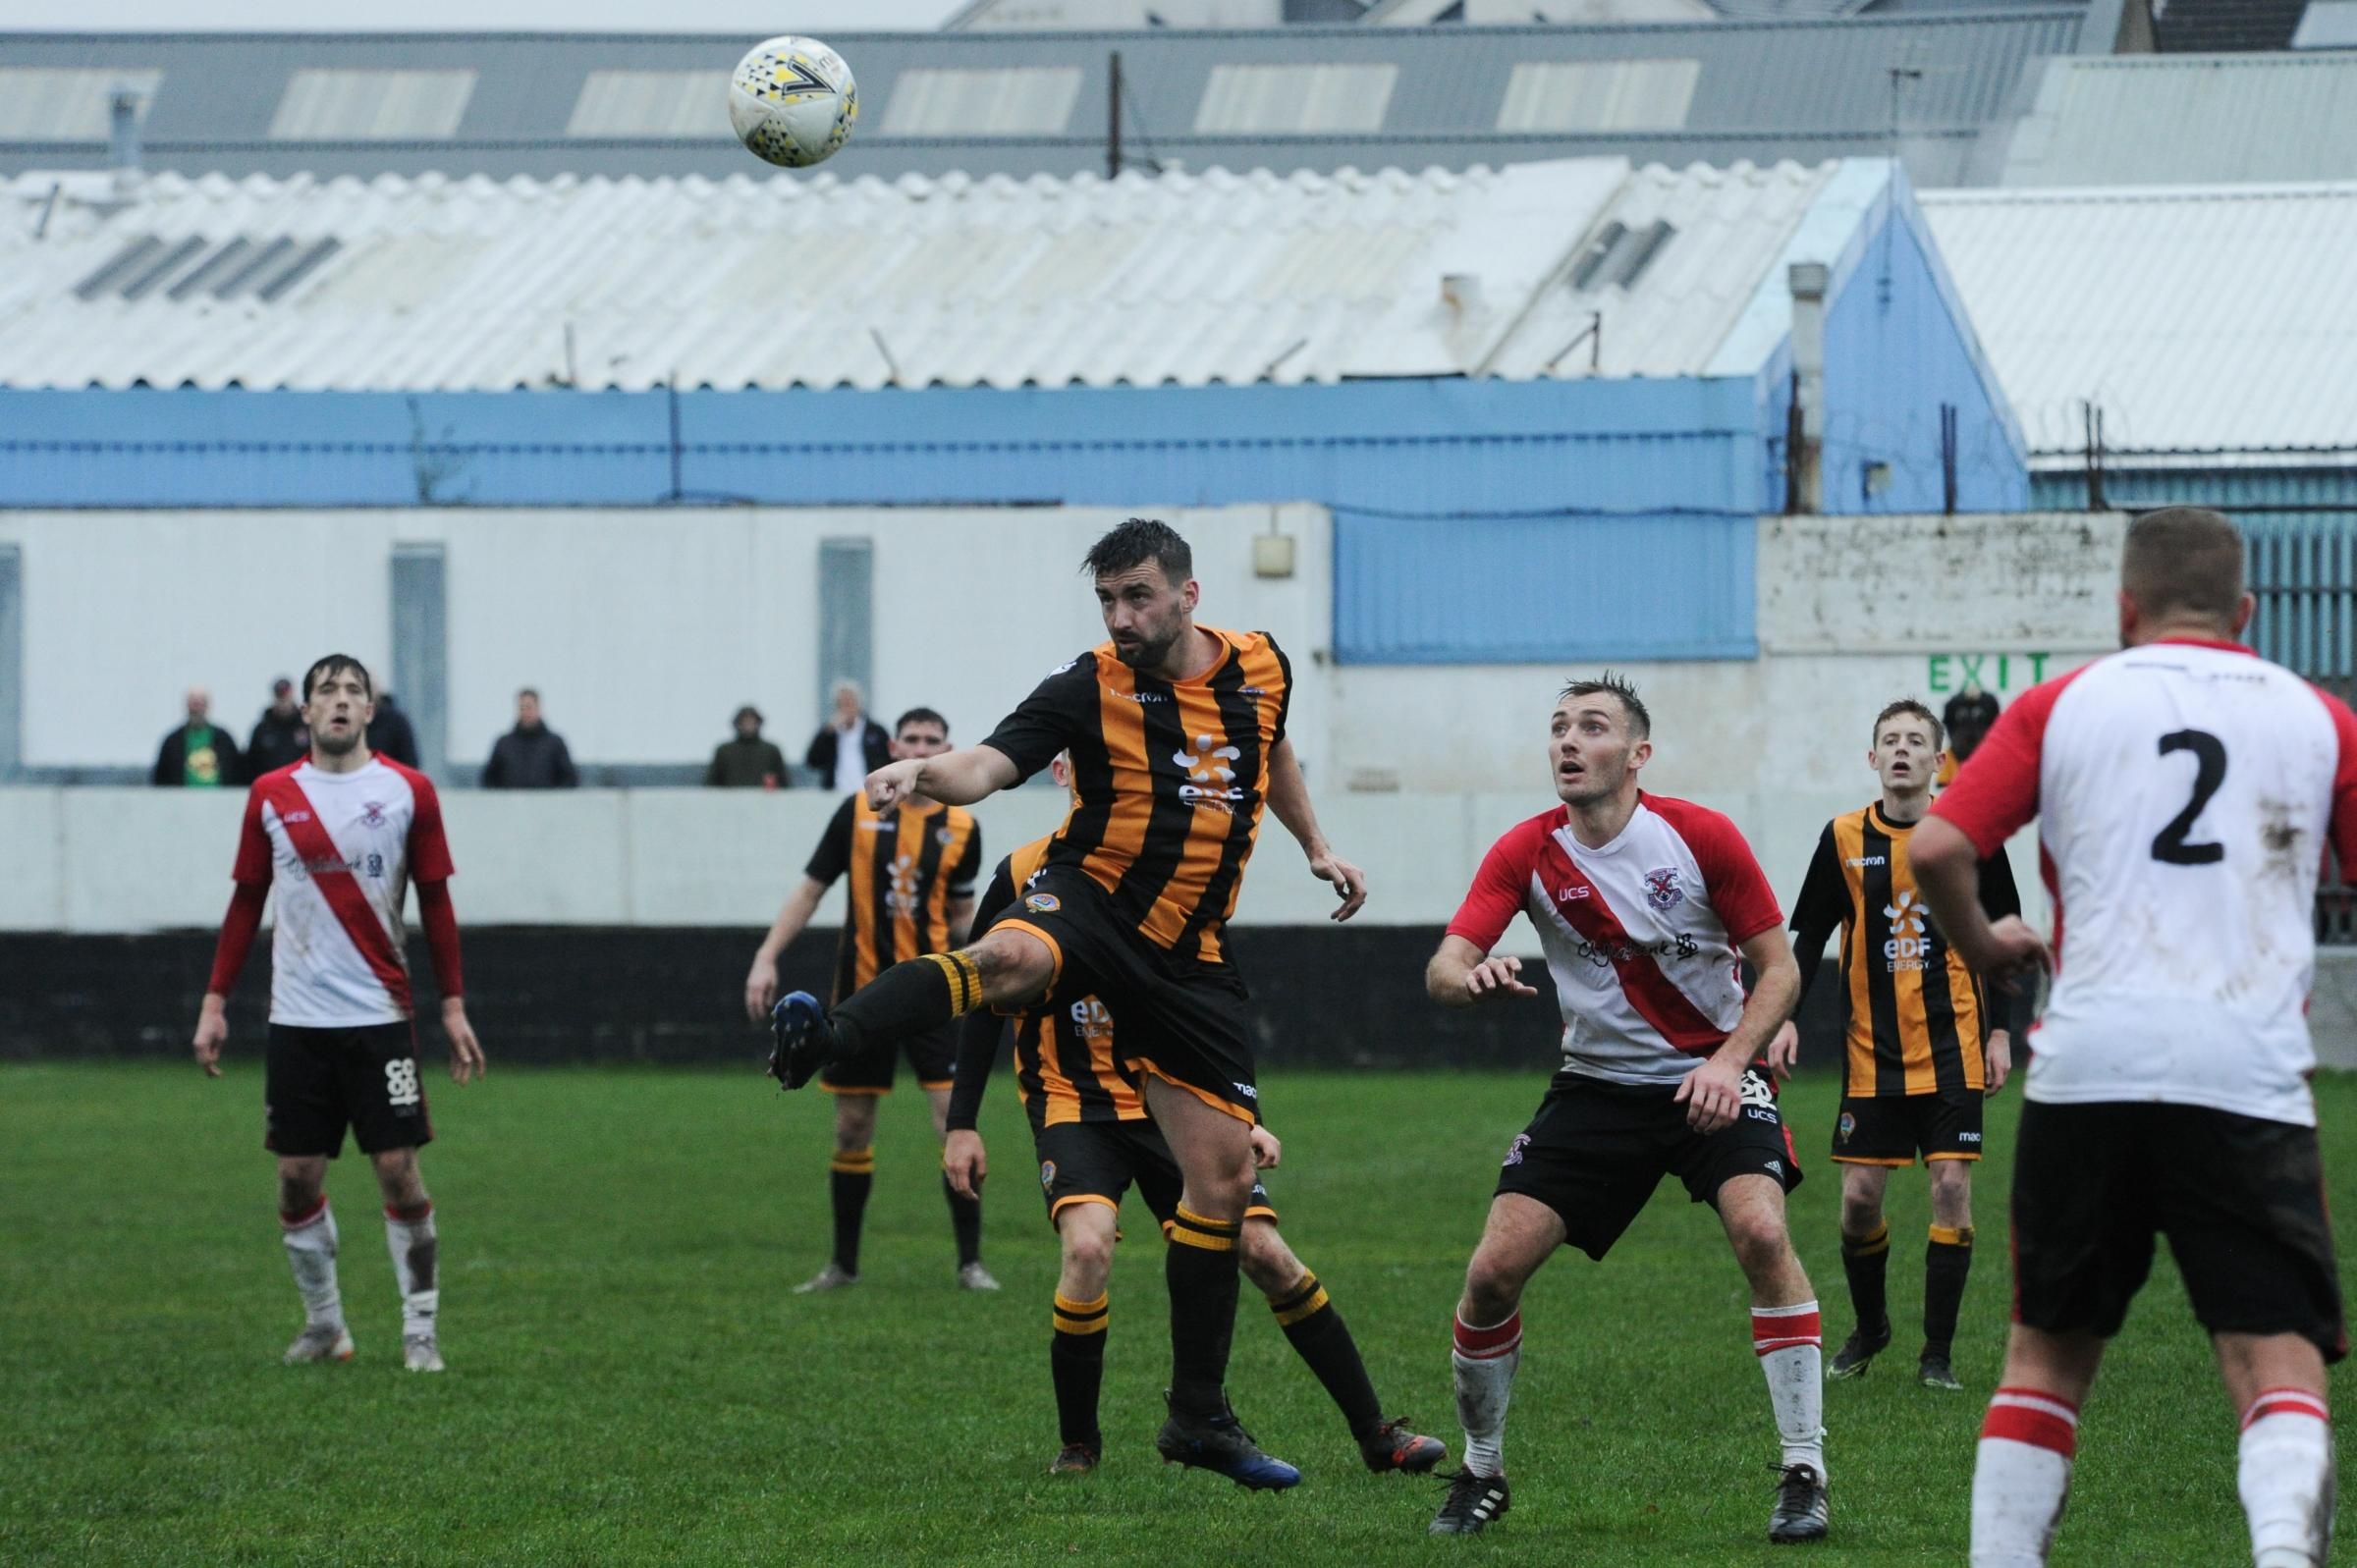 Largs host Clydebank on Saturday